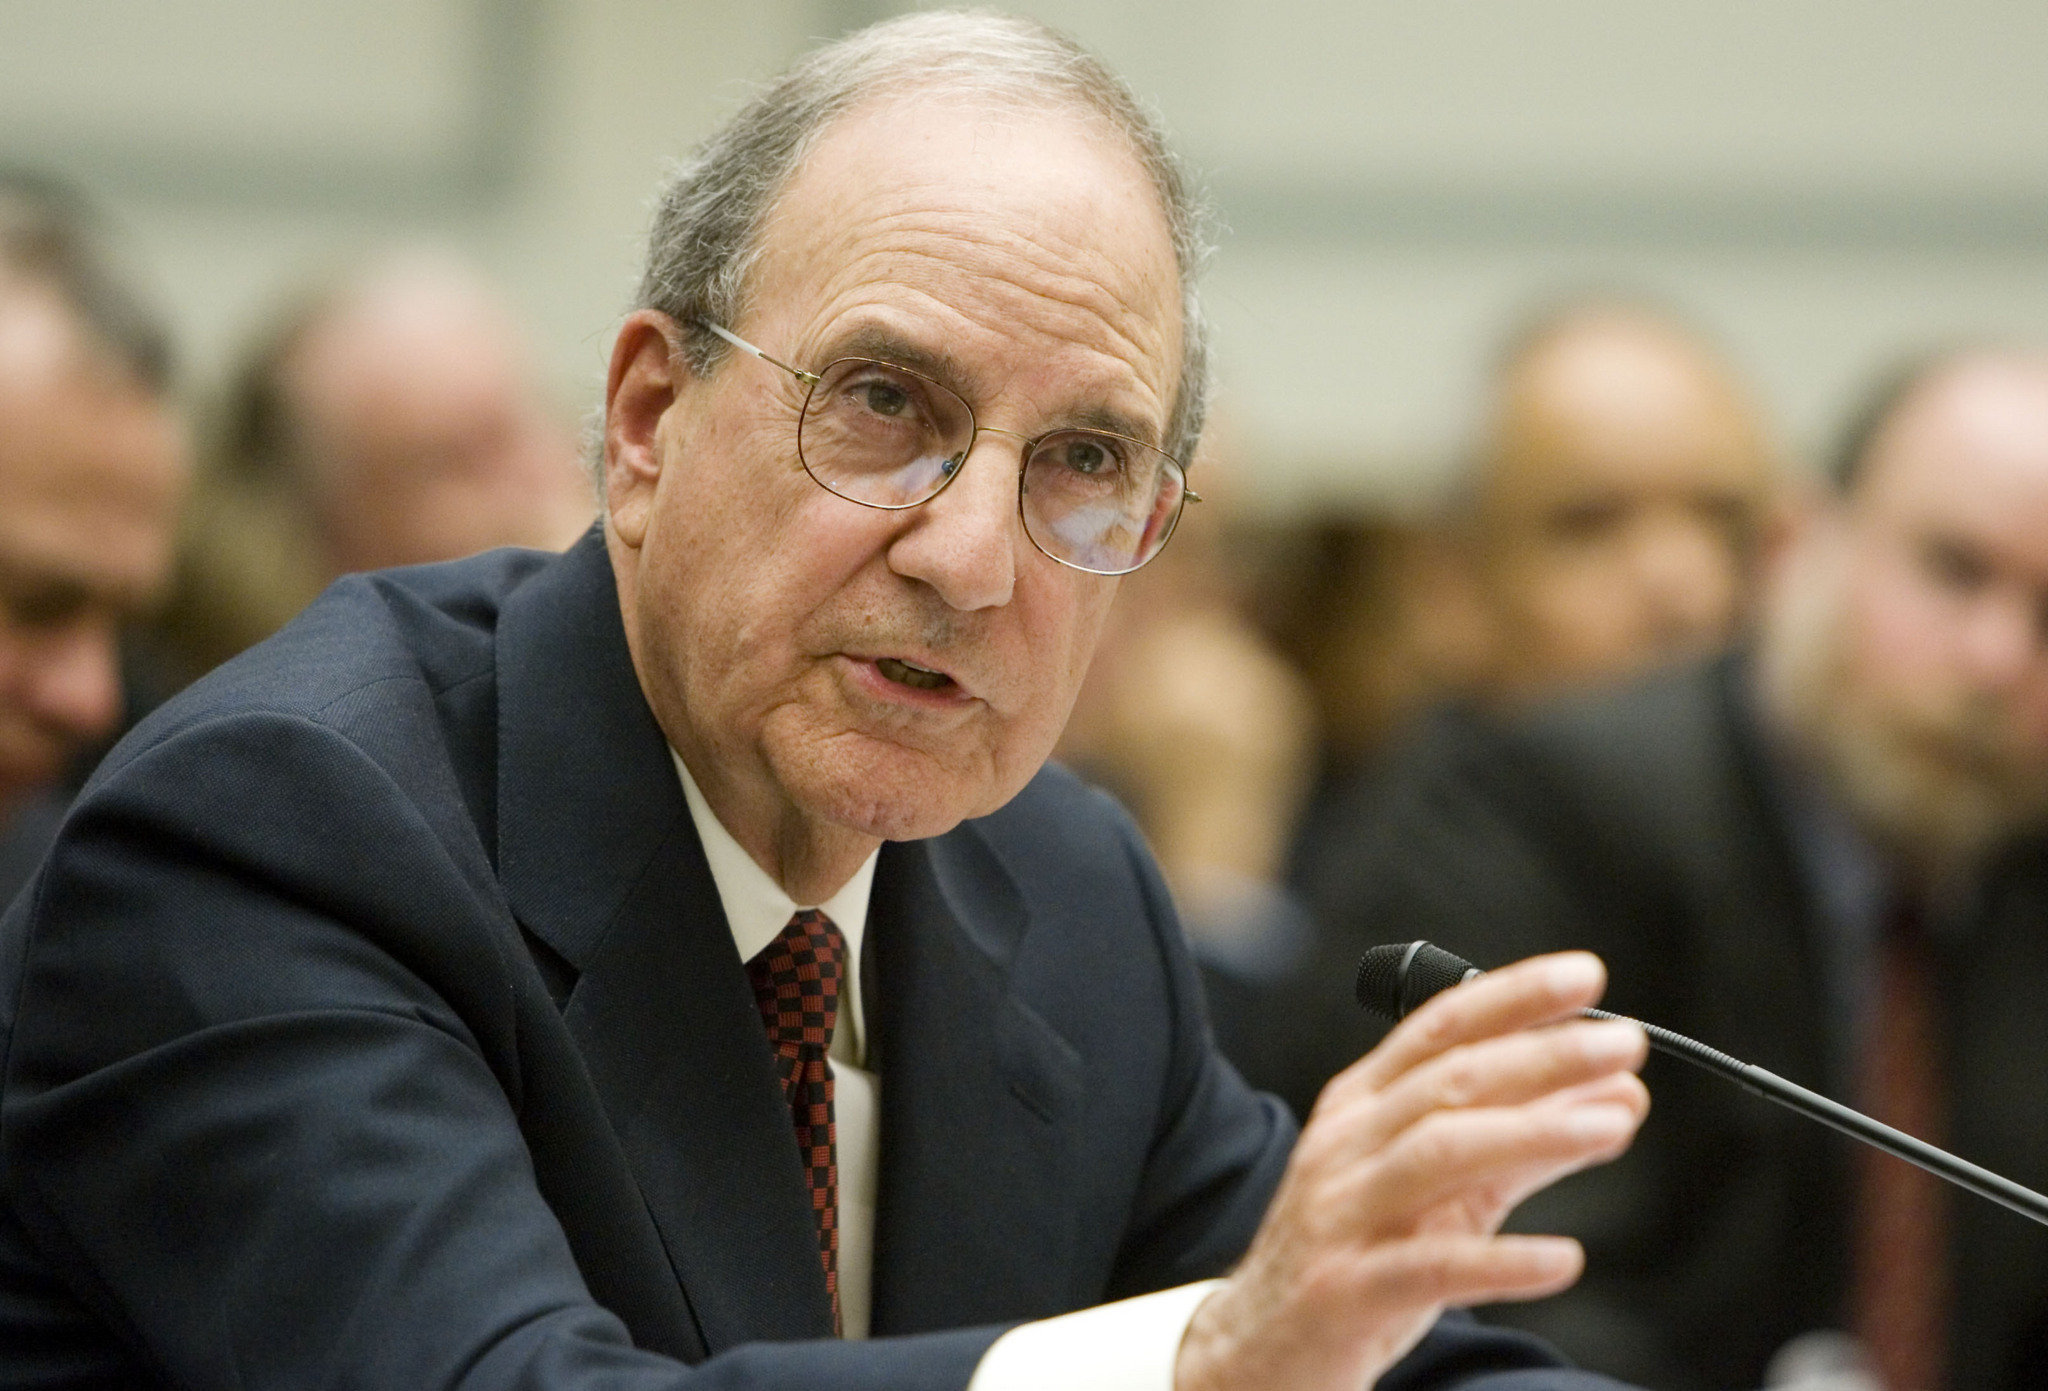 Senator George Mitchell and the Mitchell Report on anabolic steroids in baseball